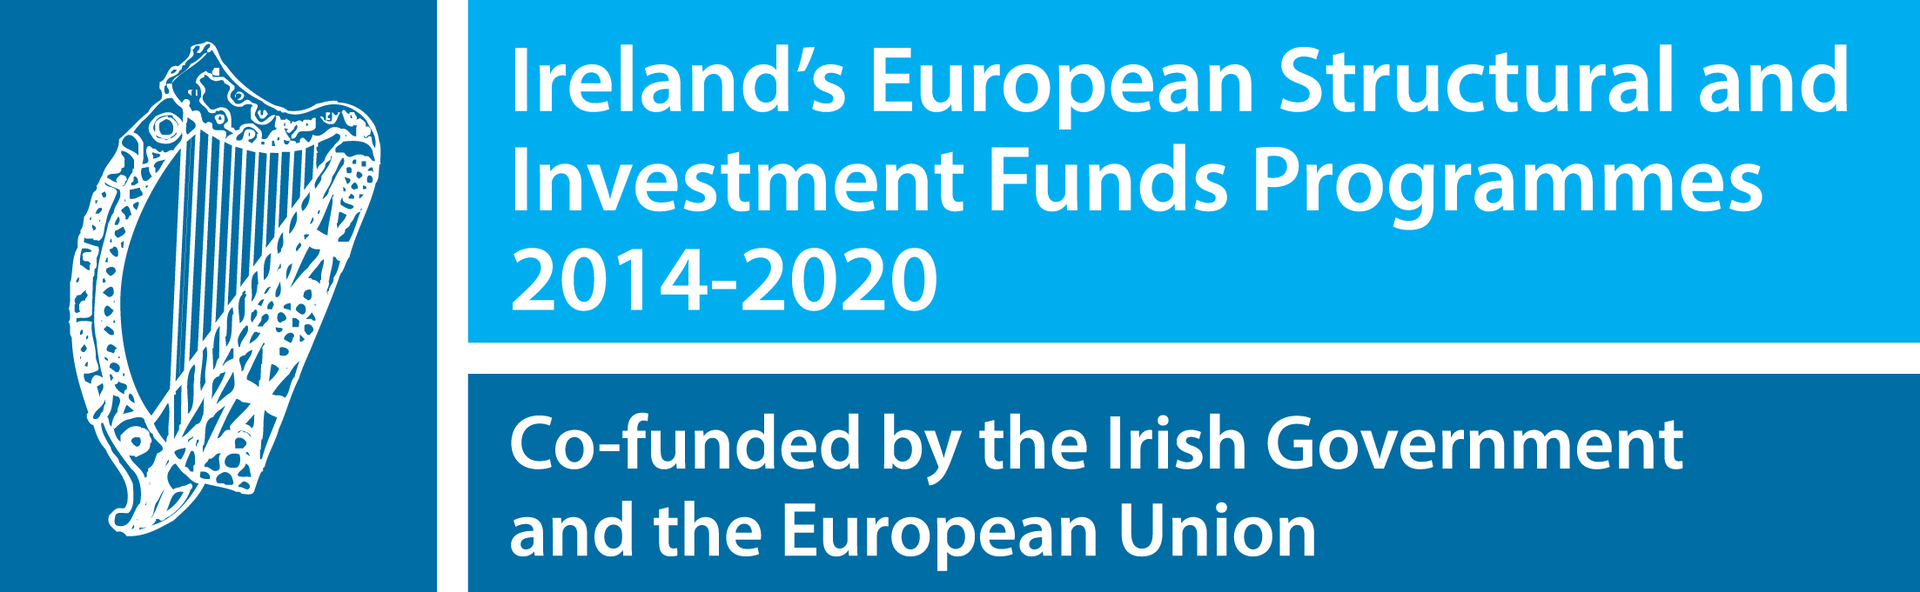 Ireland European Structural and investment funds programmes logo